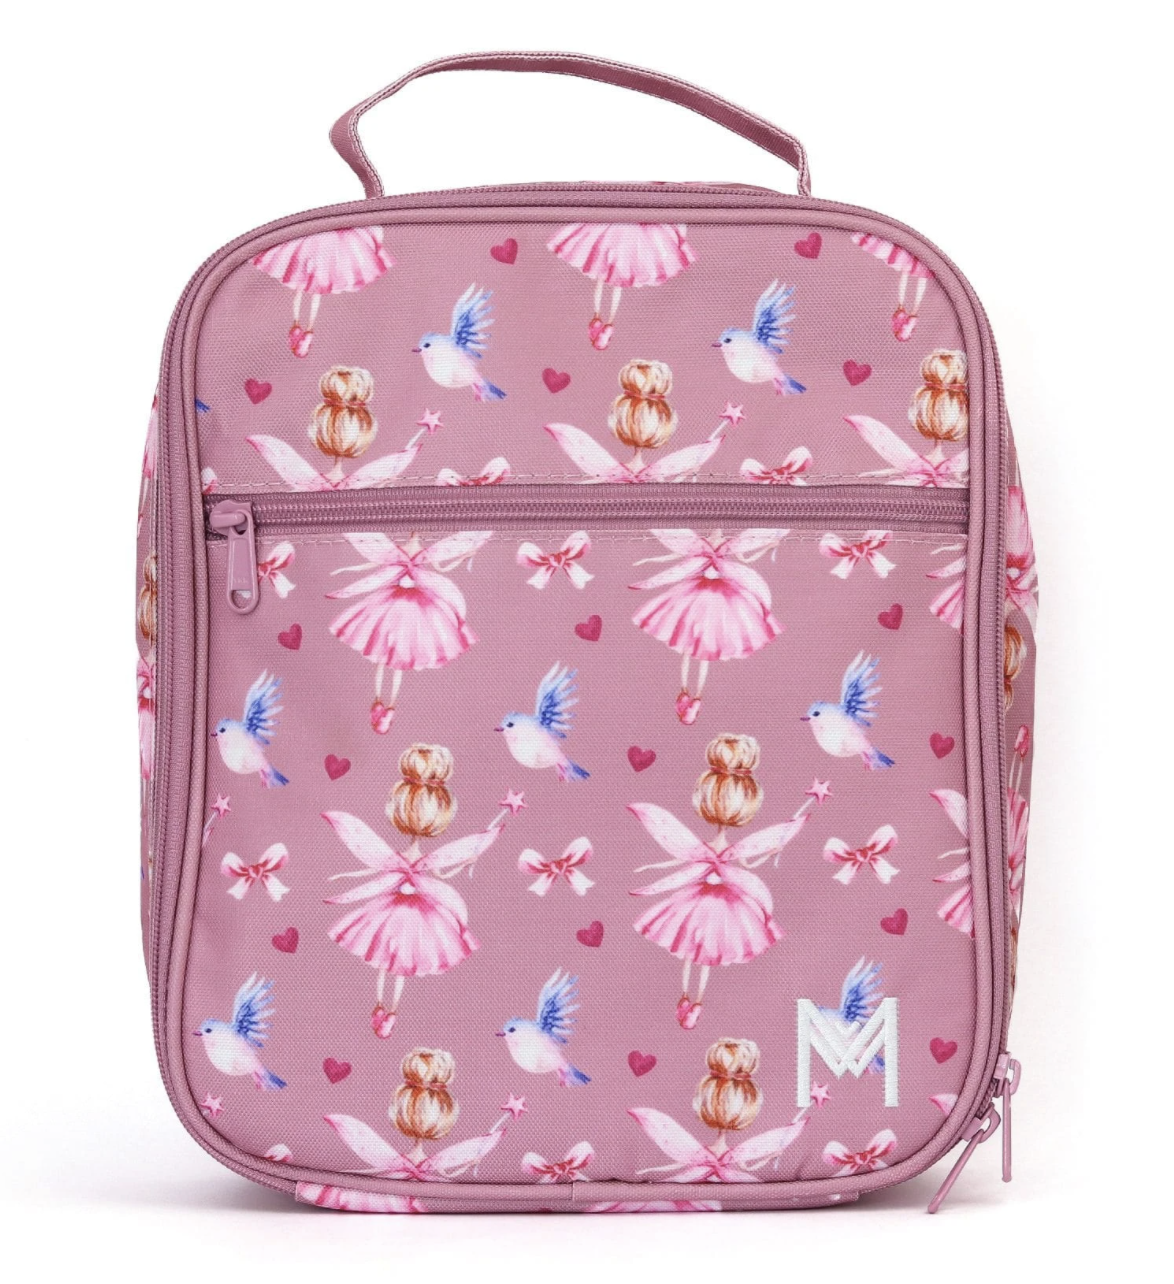 Montii thermisch isolerende Lunch Bag - Fairy-1